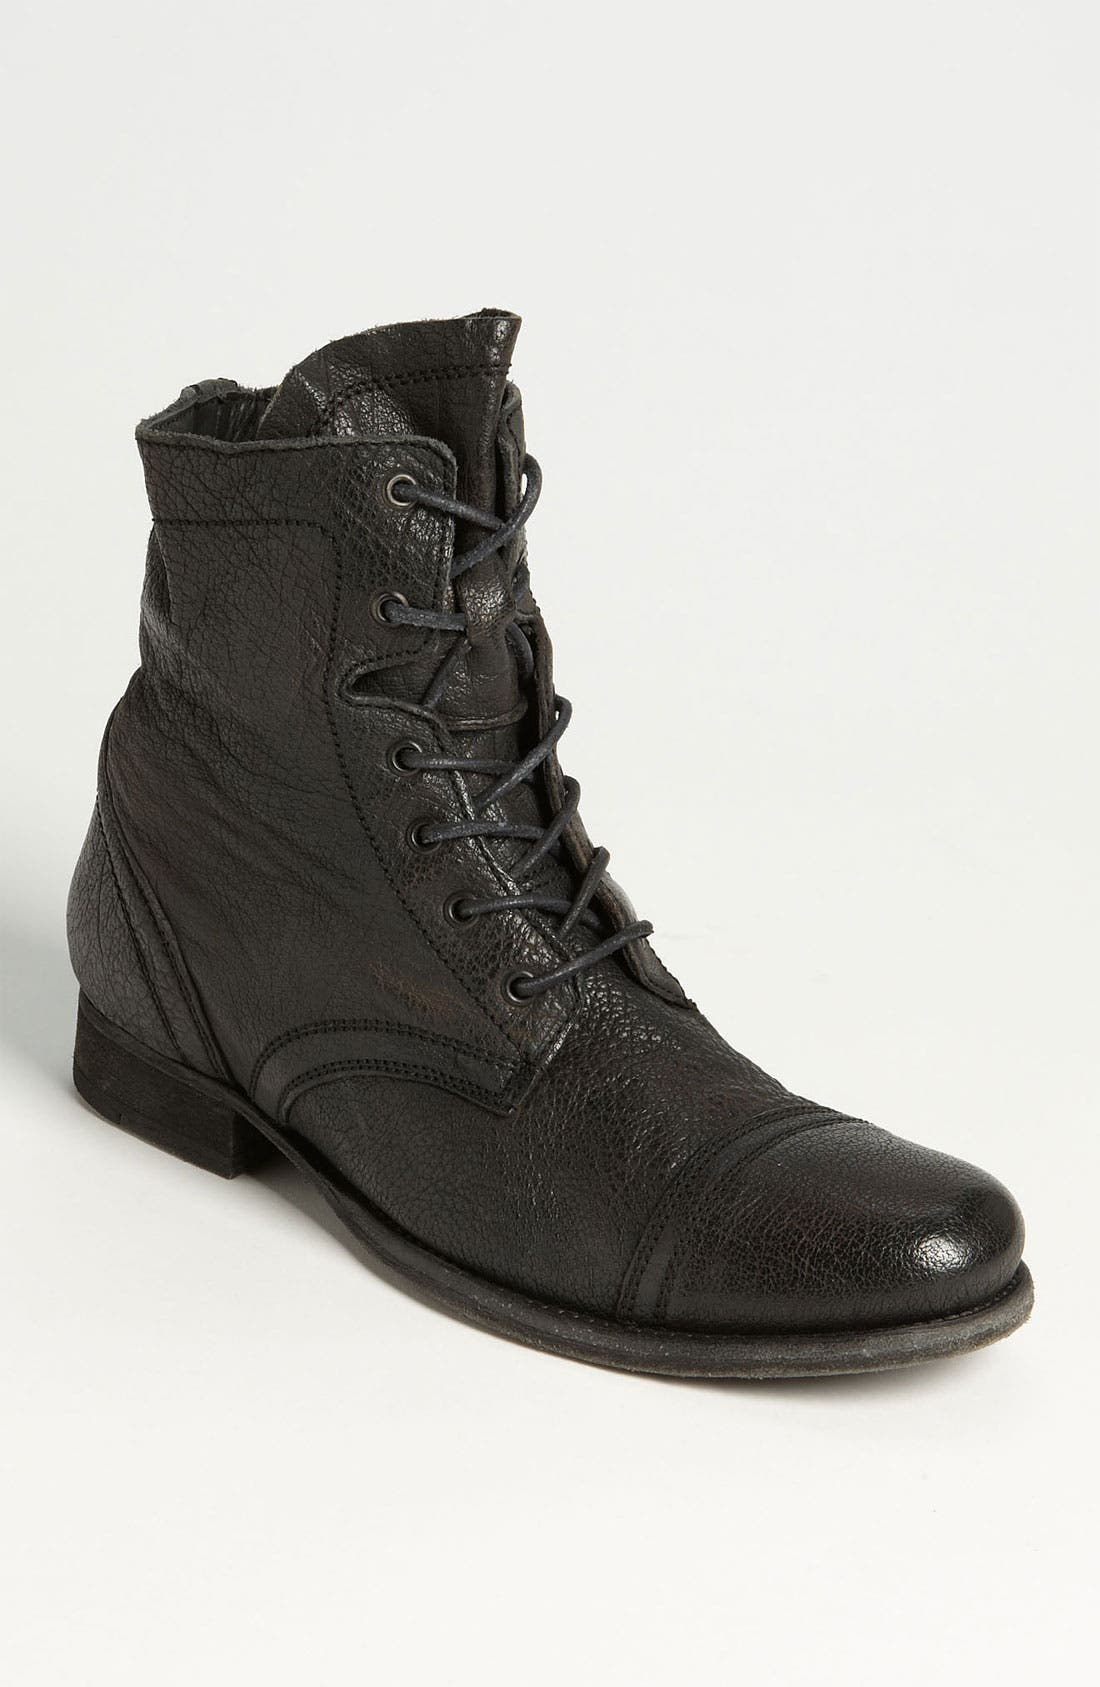 Alternate Image 1 Selected - Bacco Bucci 'Mesa' Cap Toe Boot (Online Only) (Men)